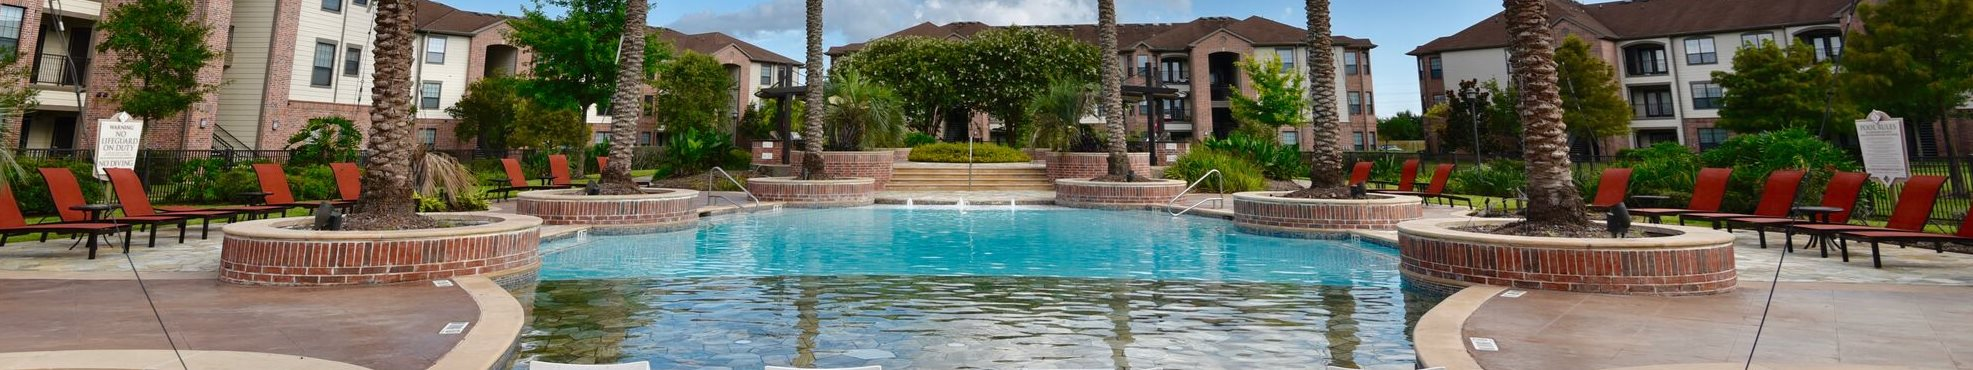 apartments in pearland with pool